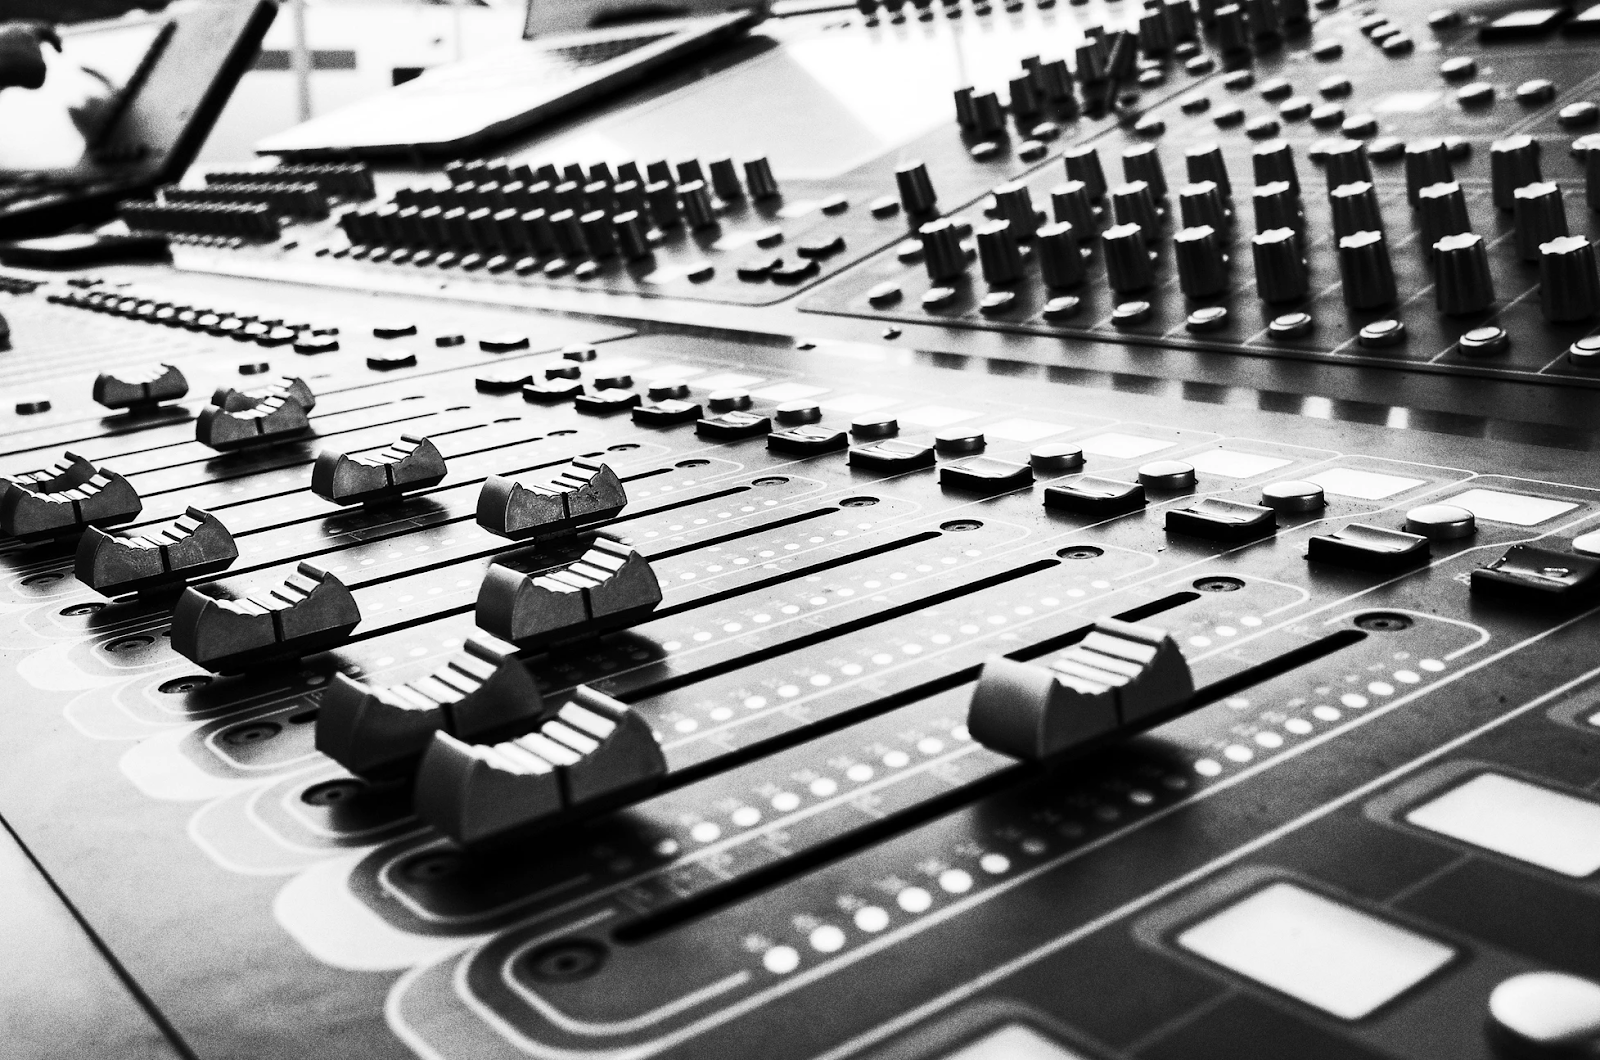 Black and white photo of audio switchboard